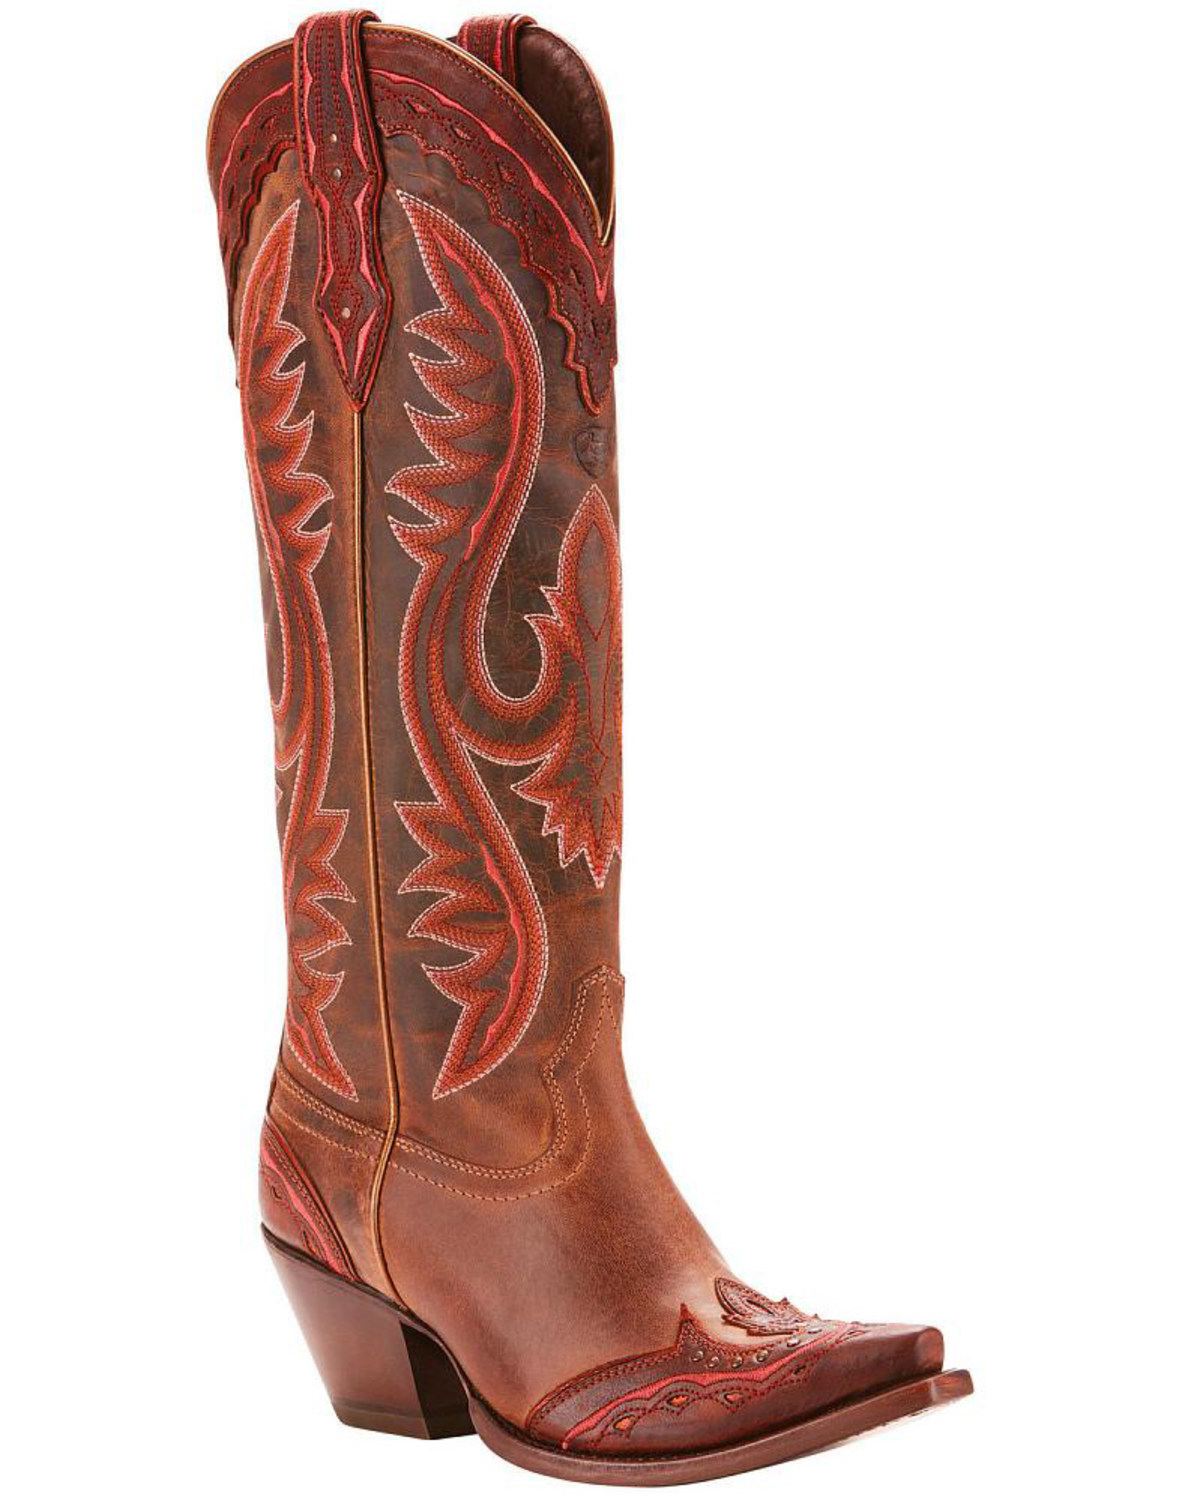 2538265720e Ariat Women s Adelina Tall Cowgirl Boots - Snip Toe